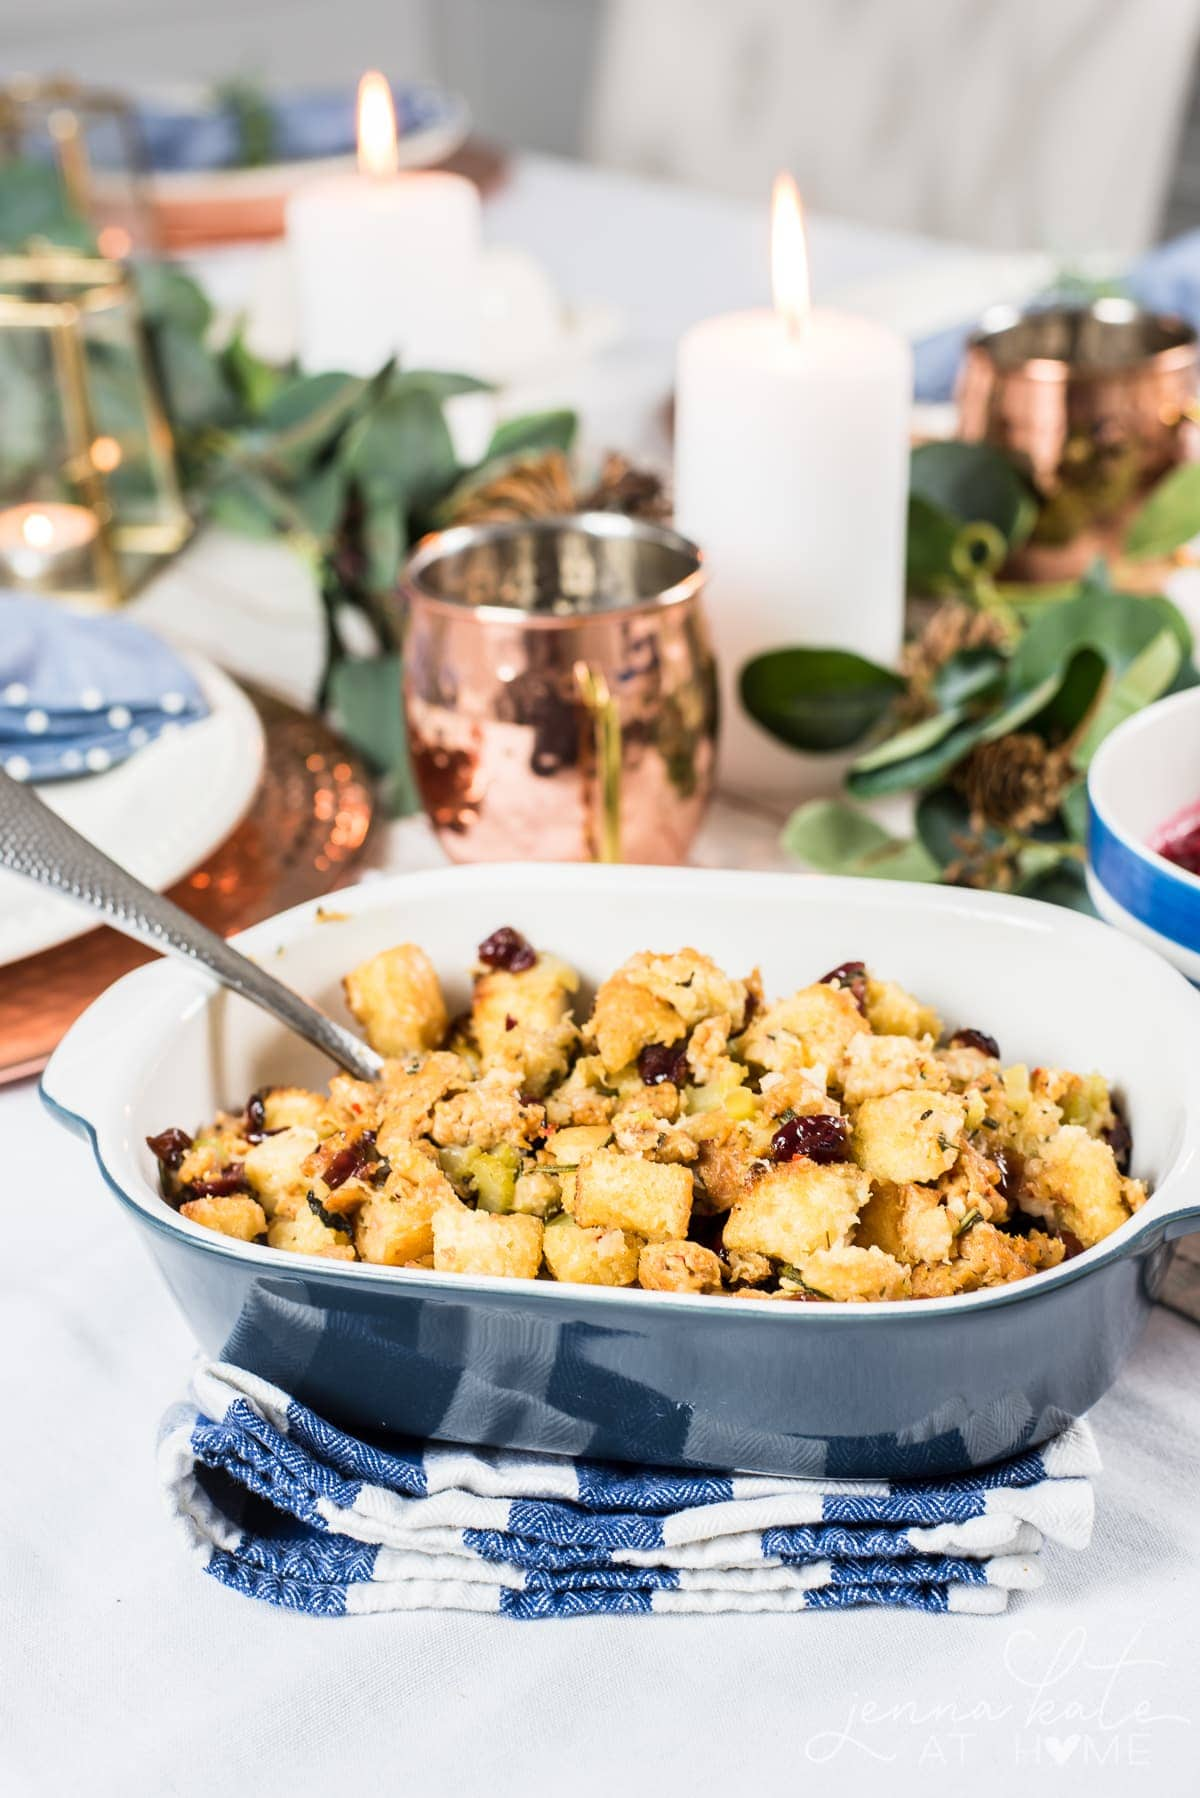 Traditional stuffing in a bowl around Thanksgiving table setting